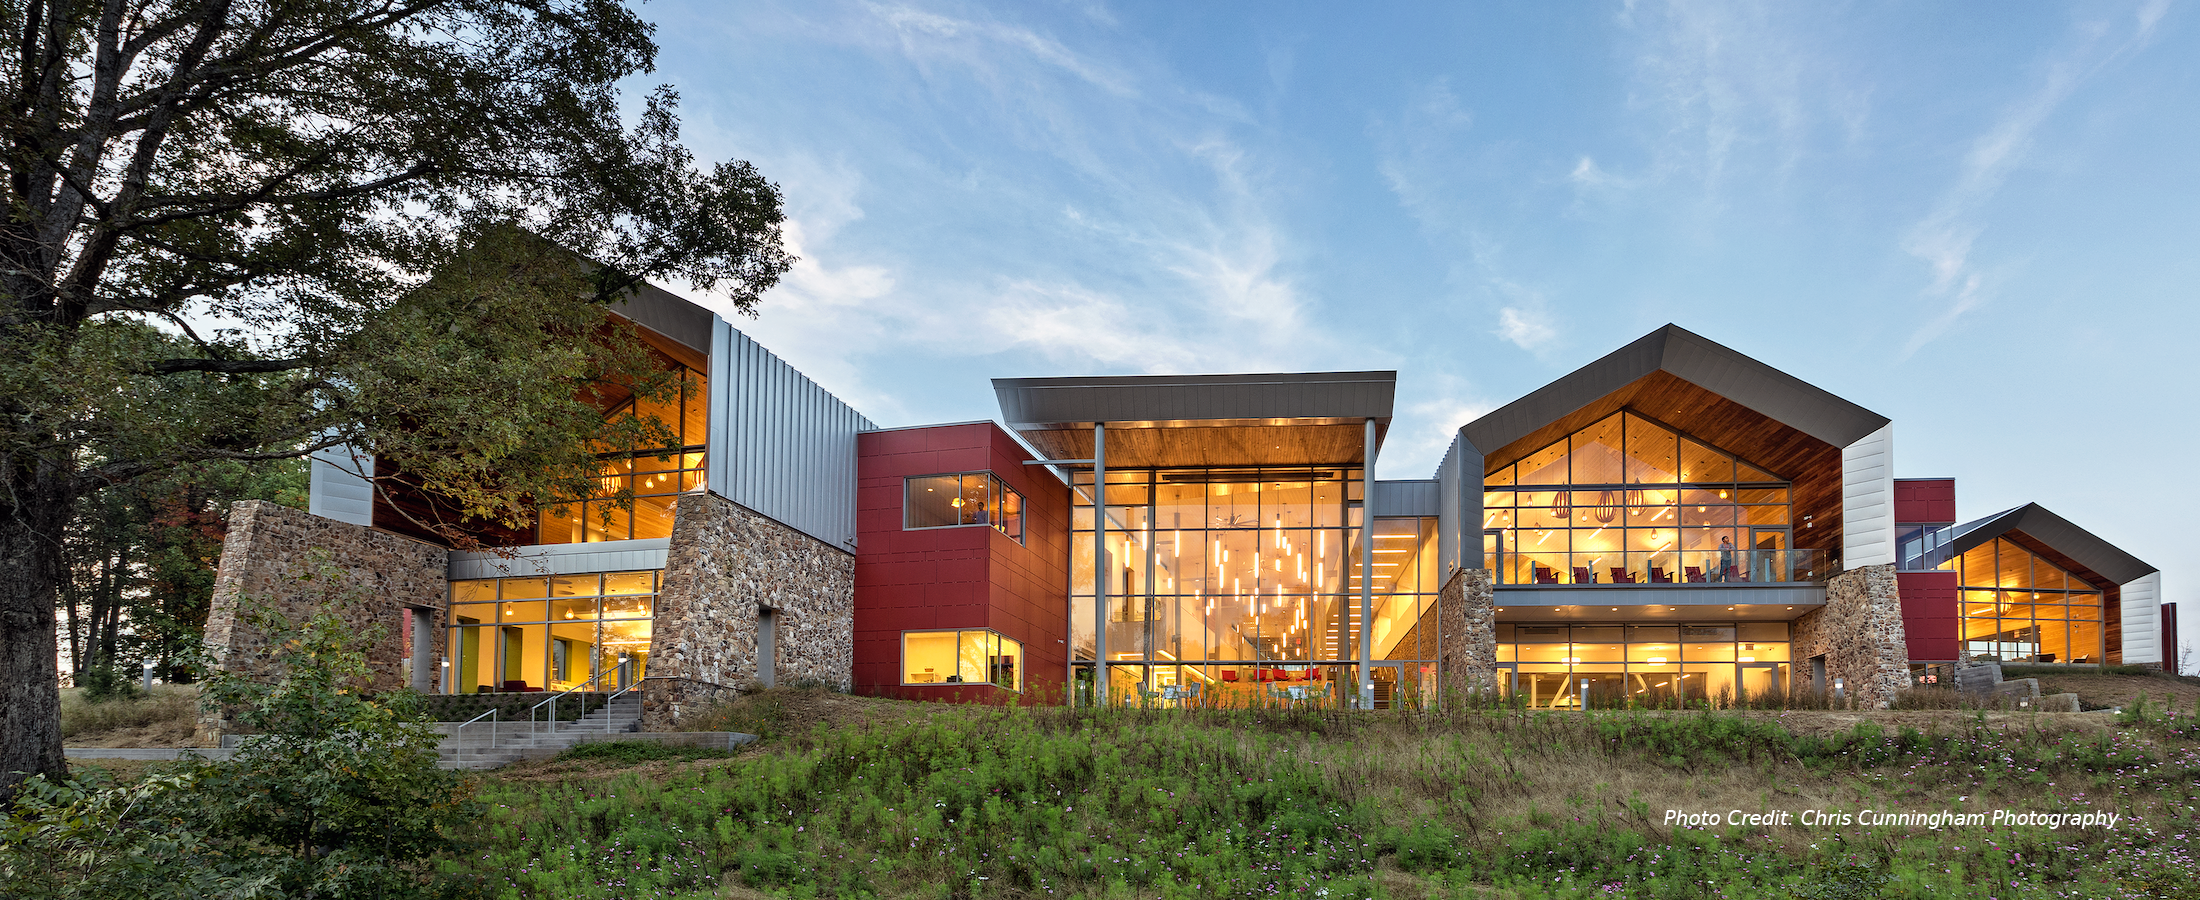 Varina Area Library - Richmond, VA - Elevation -  Photo Credit: Chris Cunningham Photography